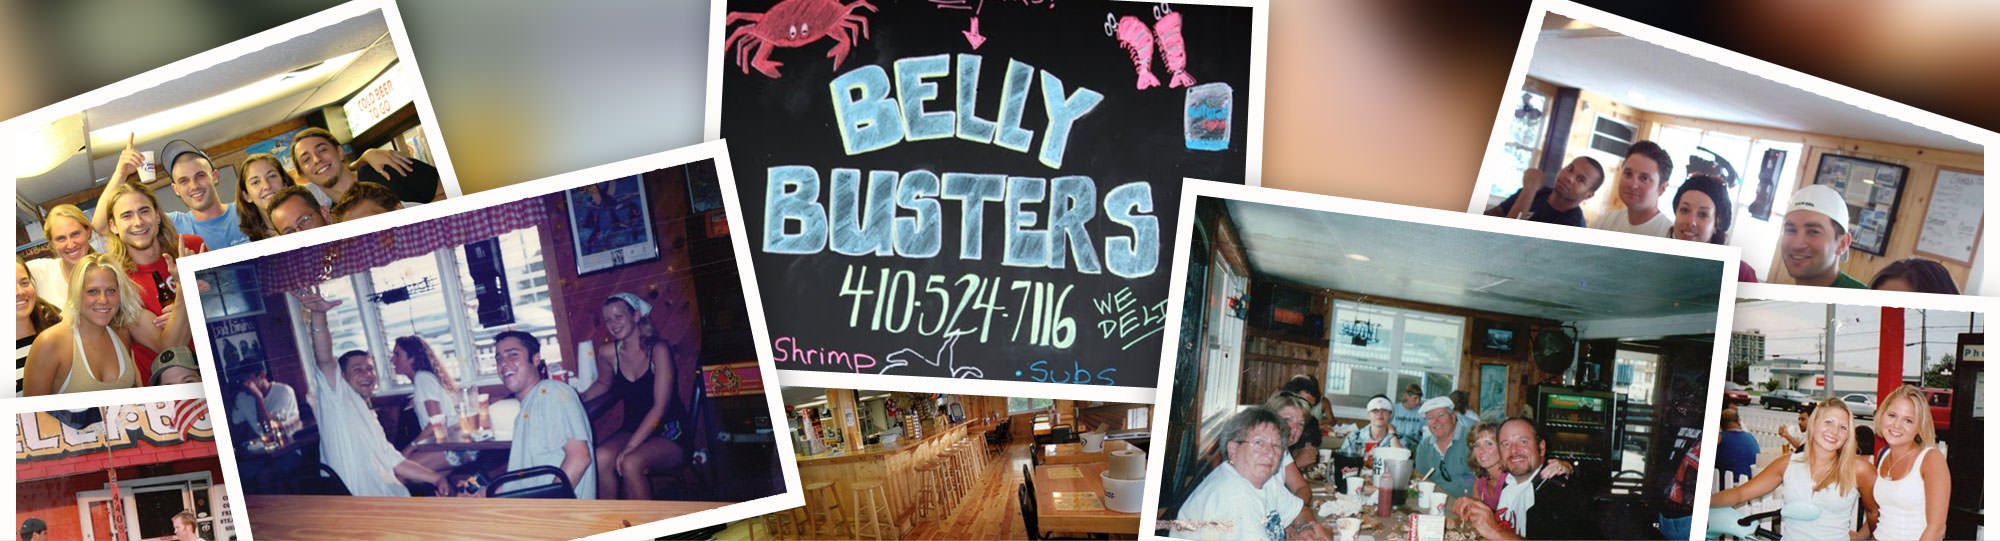 Belly Busters - Busting Bellies Since '85